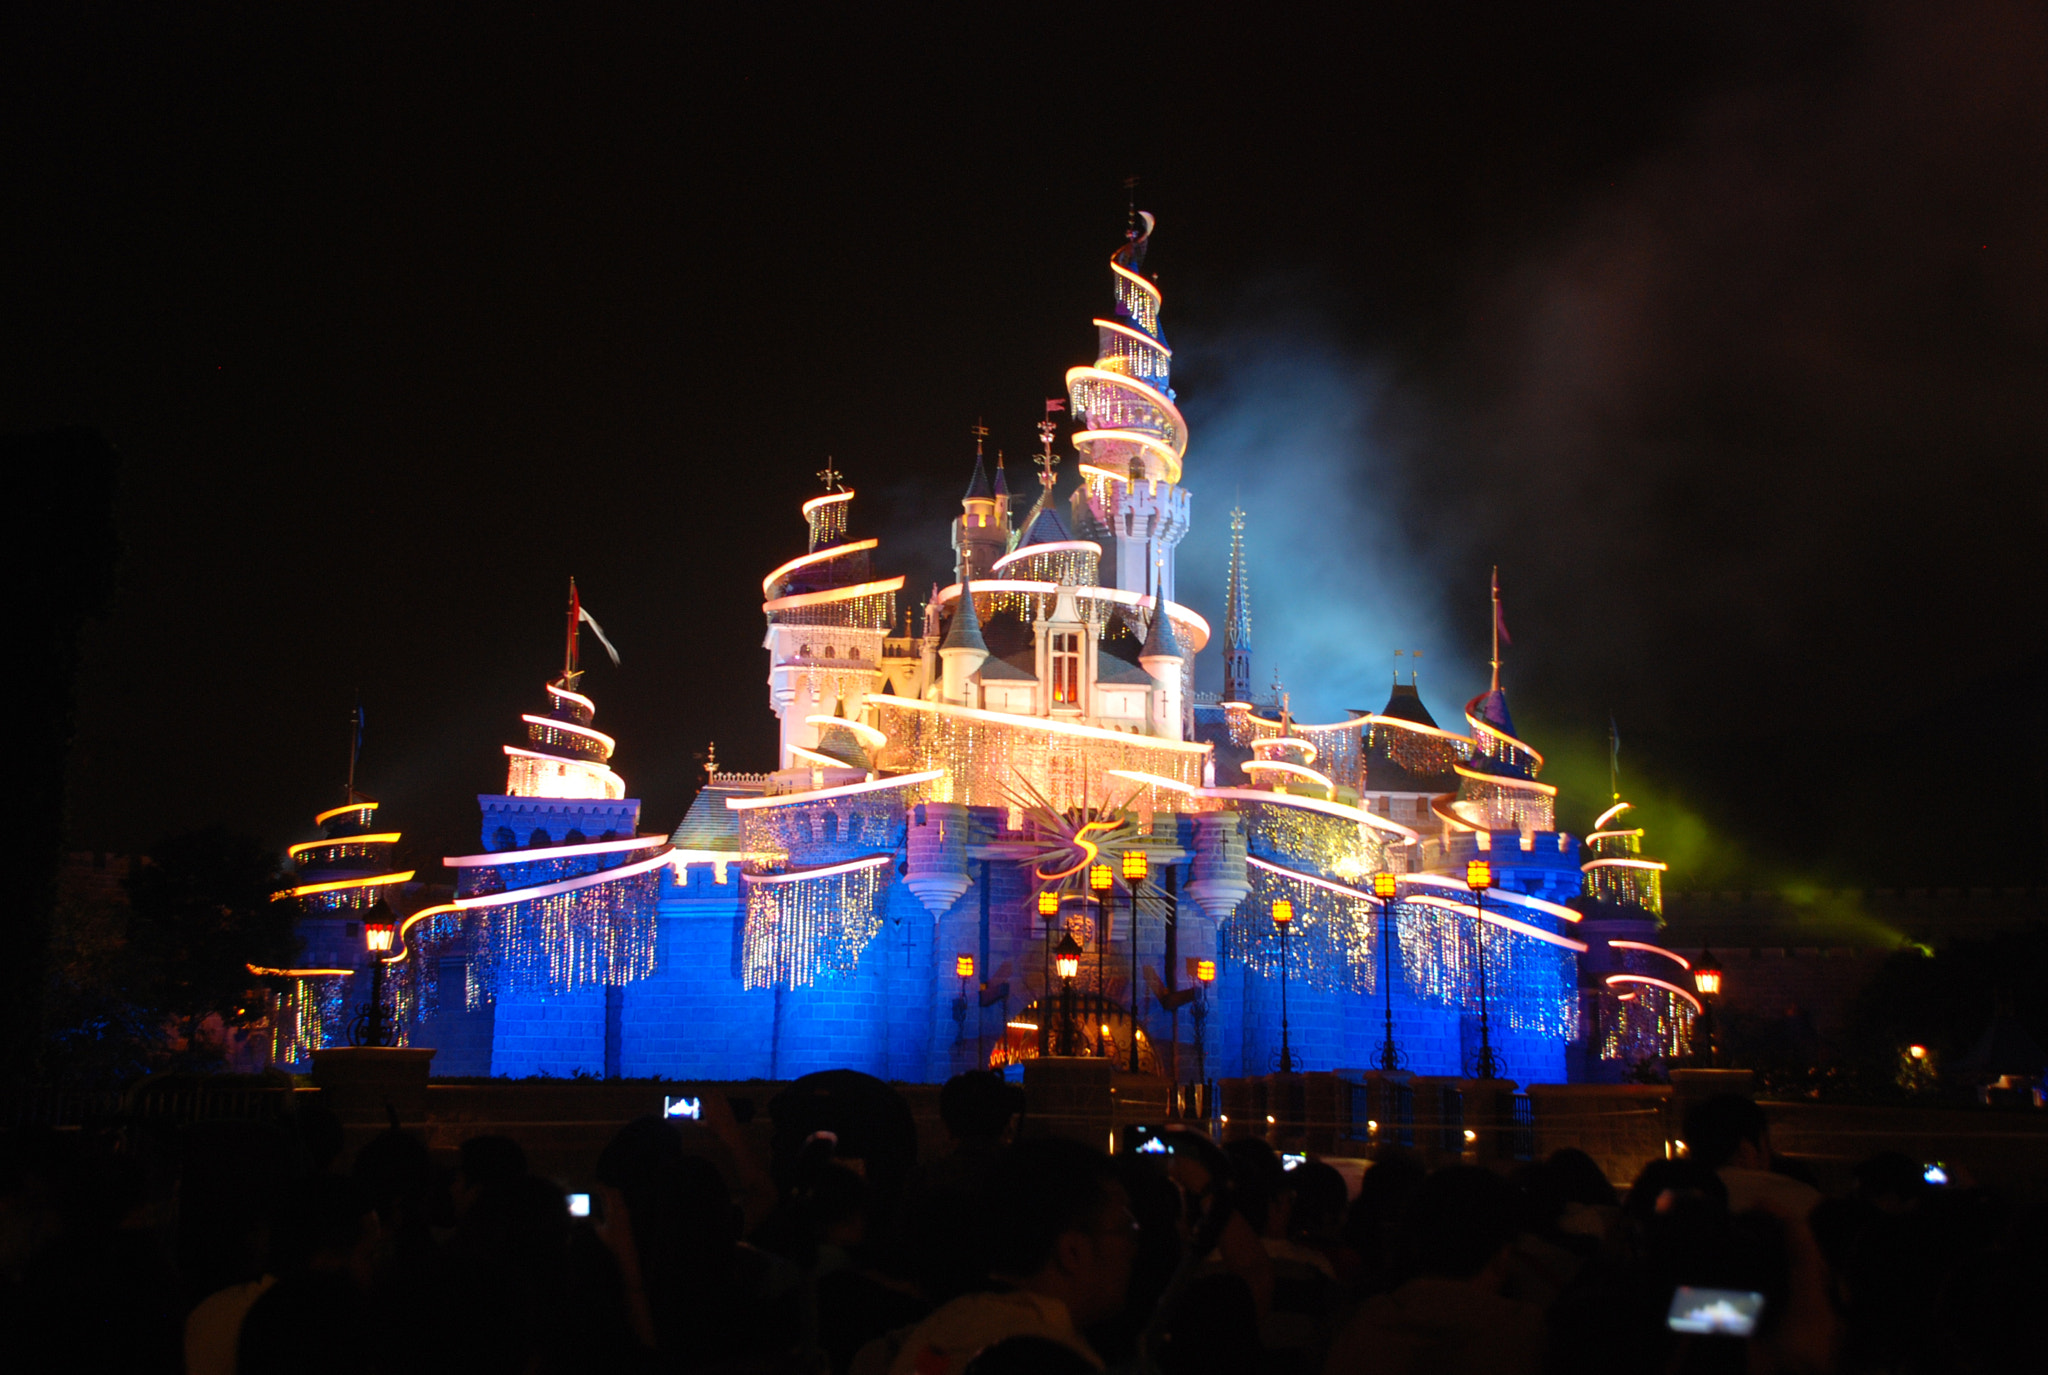 Photograph Hong Kong Disneyland by My Imagination House on 500px